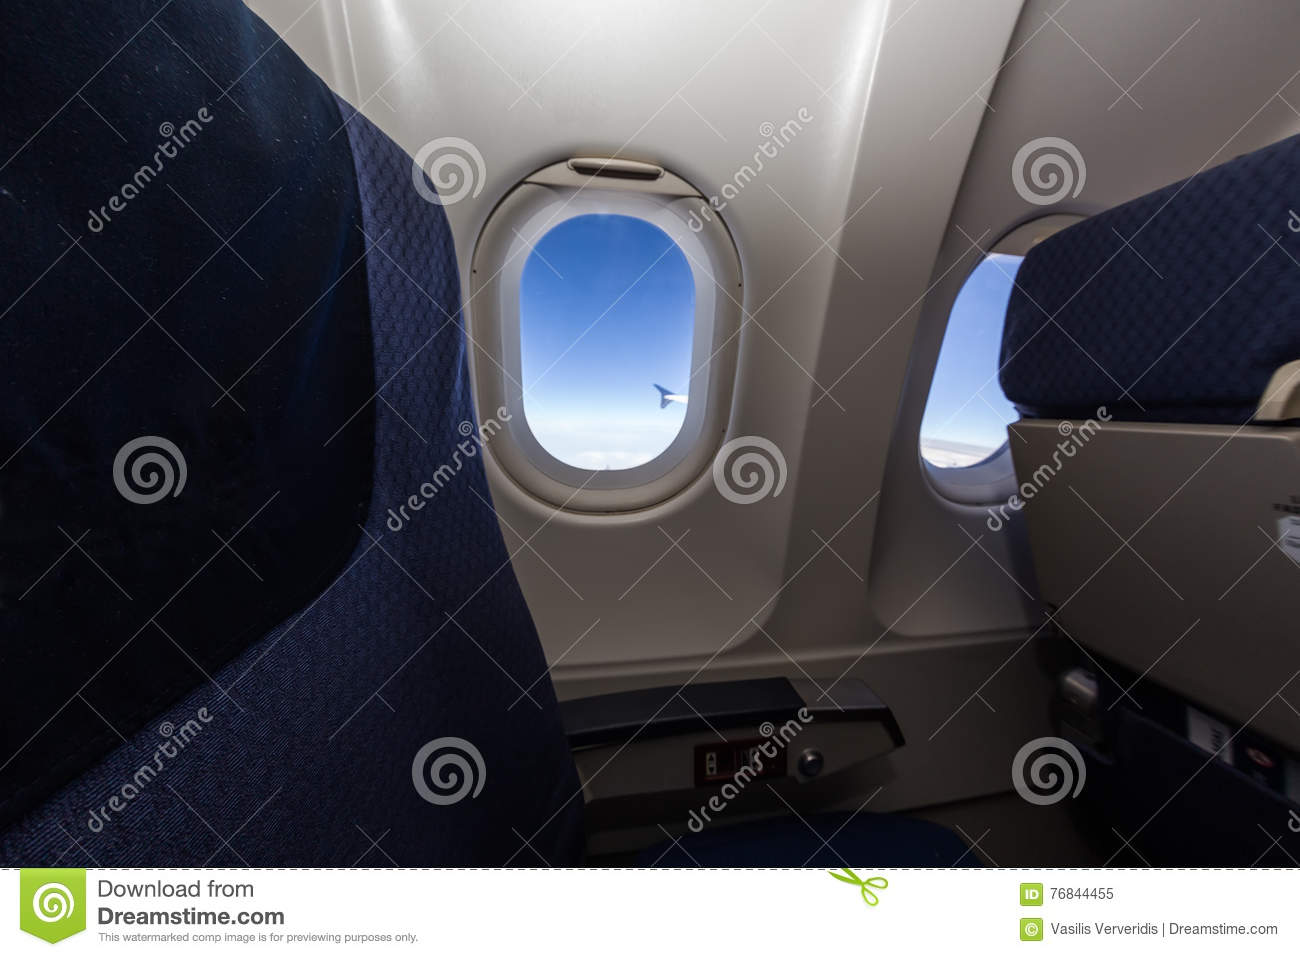 Si ge et fen tre d 39 avion l 39 int rieur d 39 un avion image for L interieur d un avion